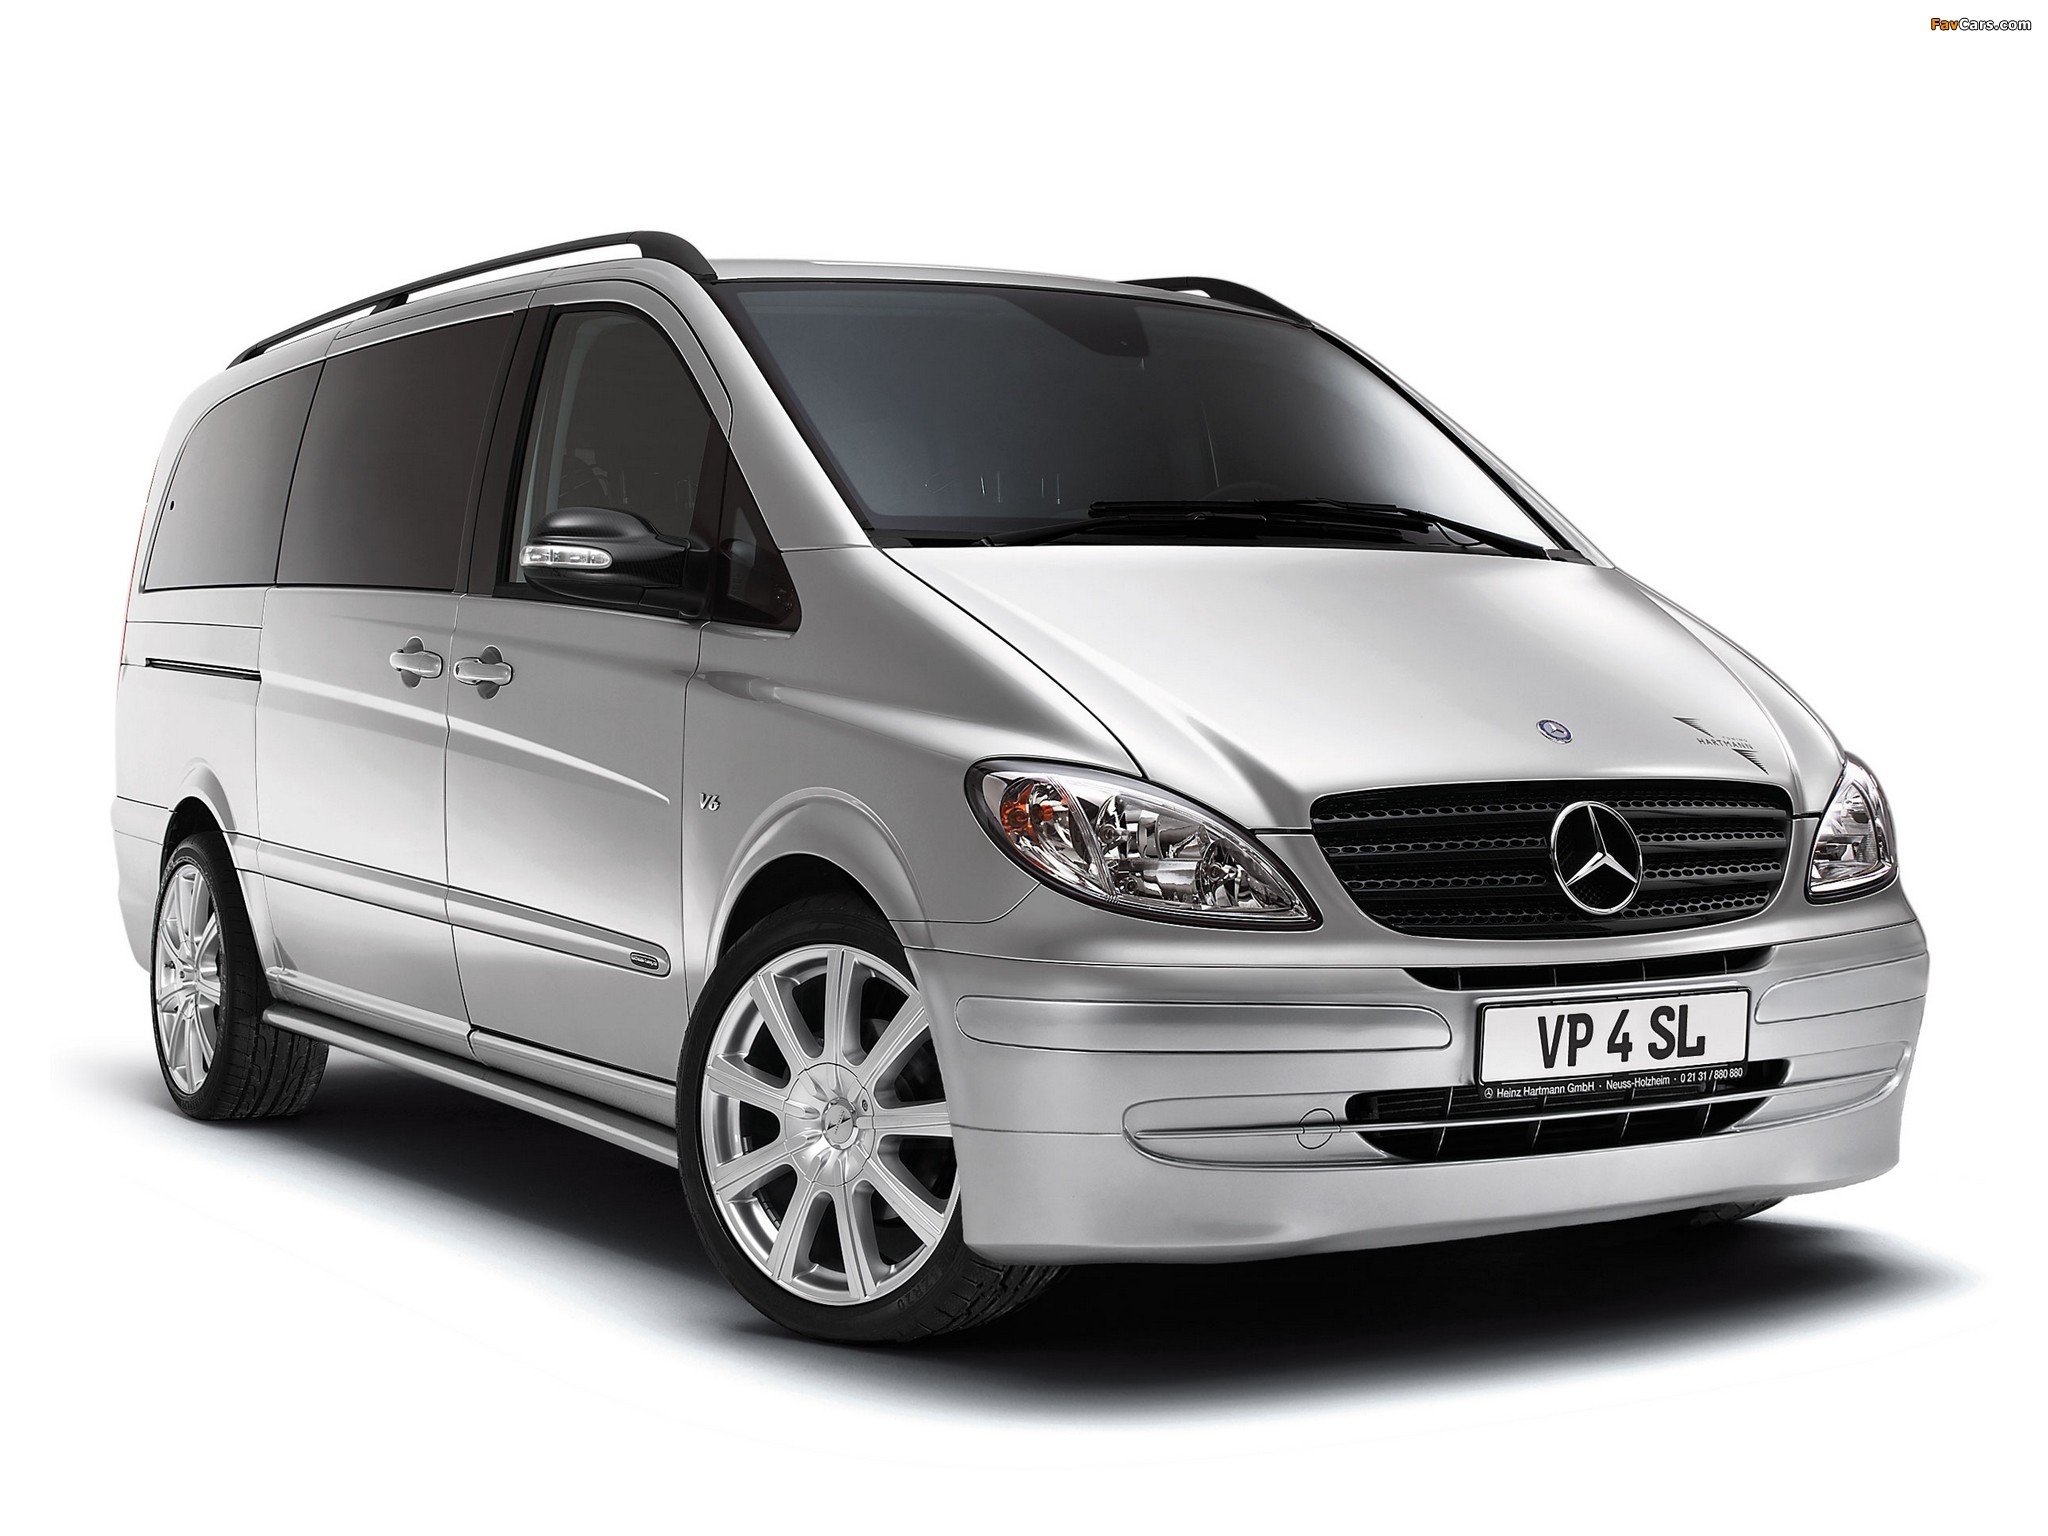 Mercedes Of Hunt Valley >> Chauffeur Hire Car Business For Sale.Wedding Car Company Leisure Businesses For Sale Other In ...